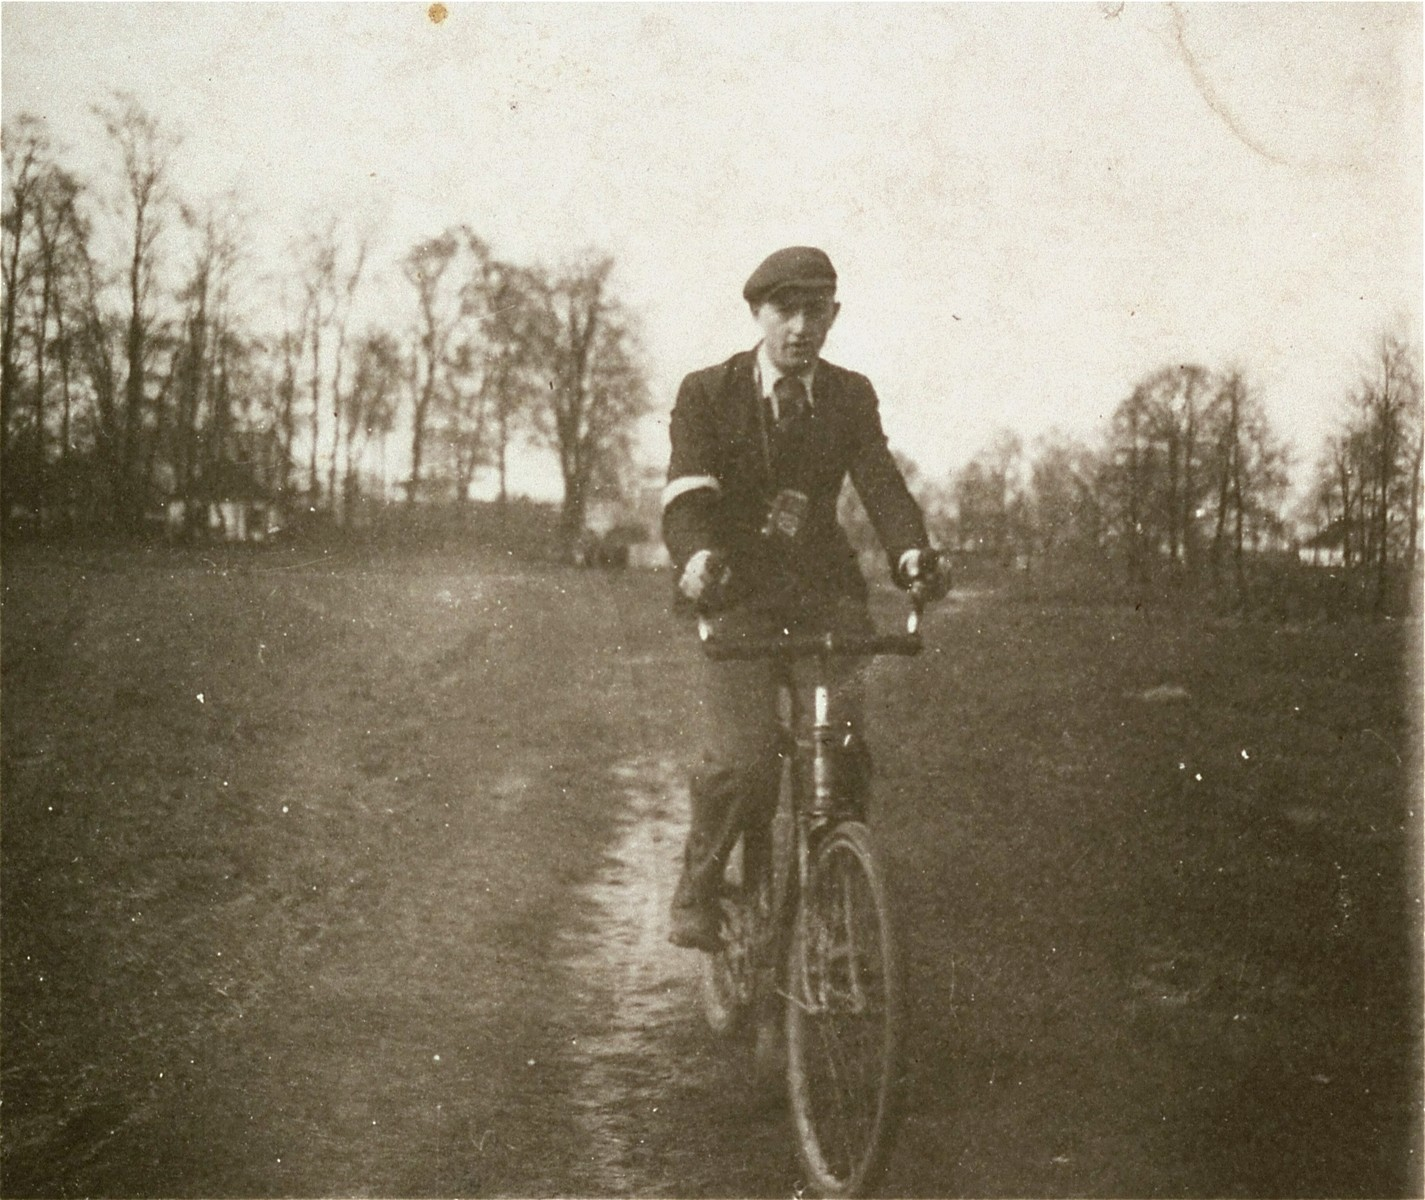 A Jewish boy rides a bicycle in the Kolbuszowa ghetto.   Pictured is Mondi Stub, a friend of Manius Notowicz, the donor.